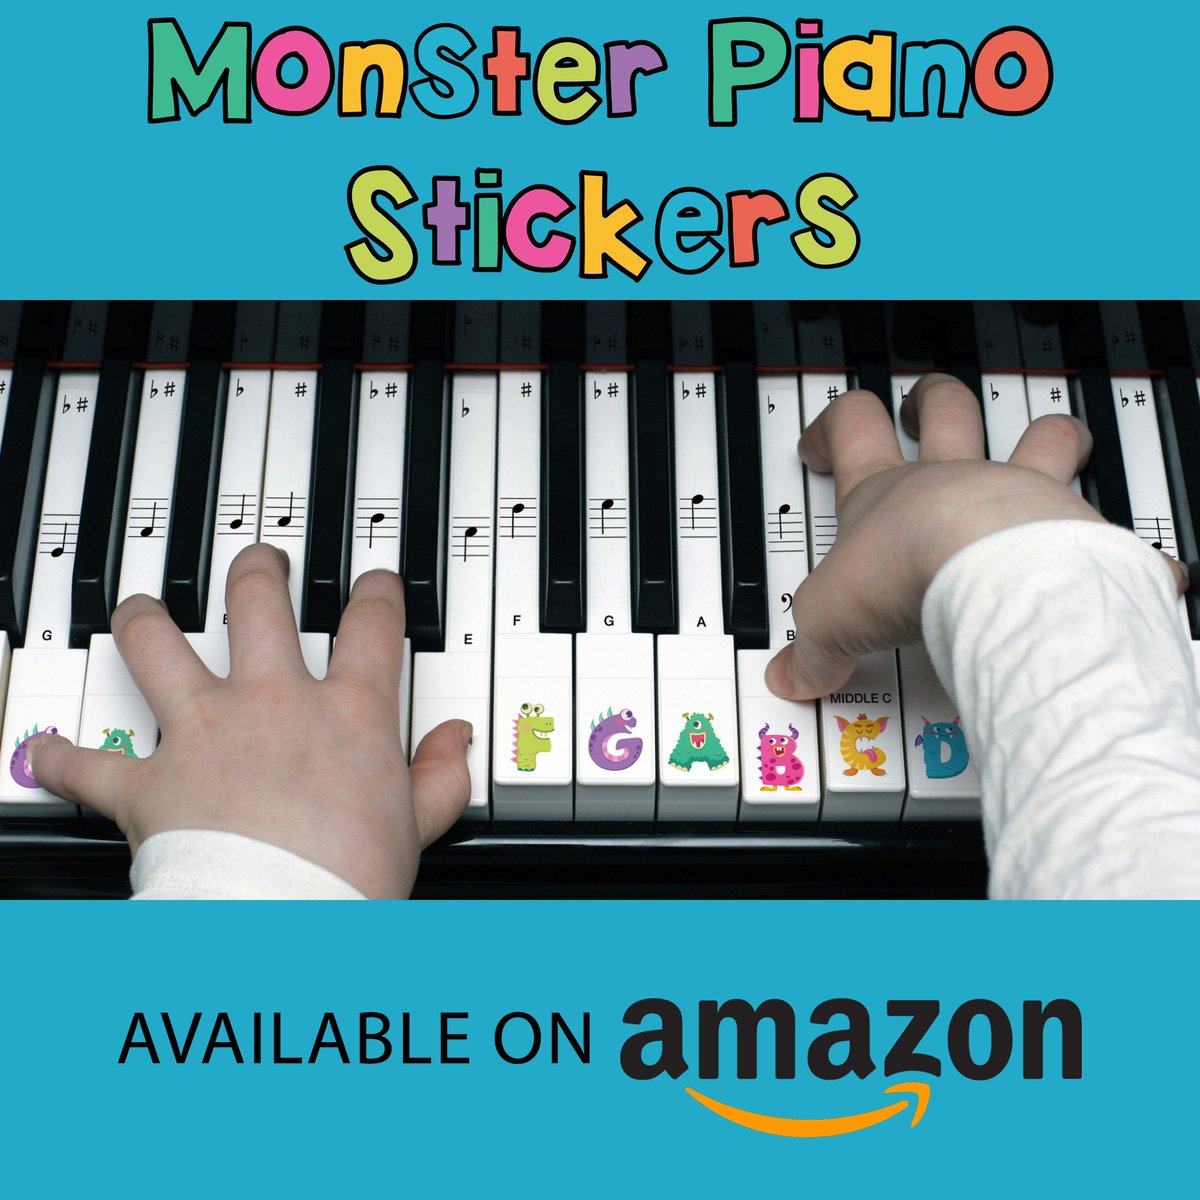 Pianist magazine on Twitter: